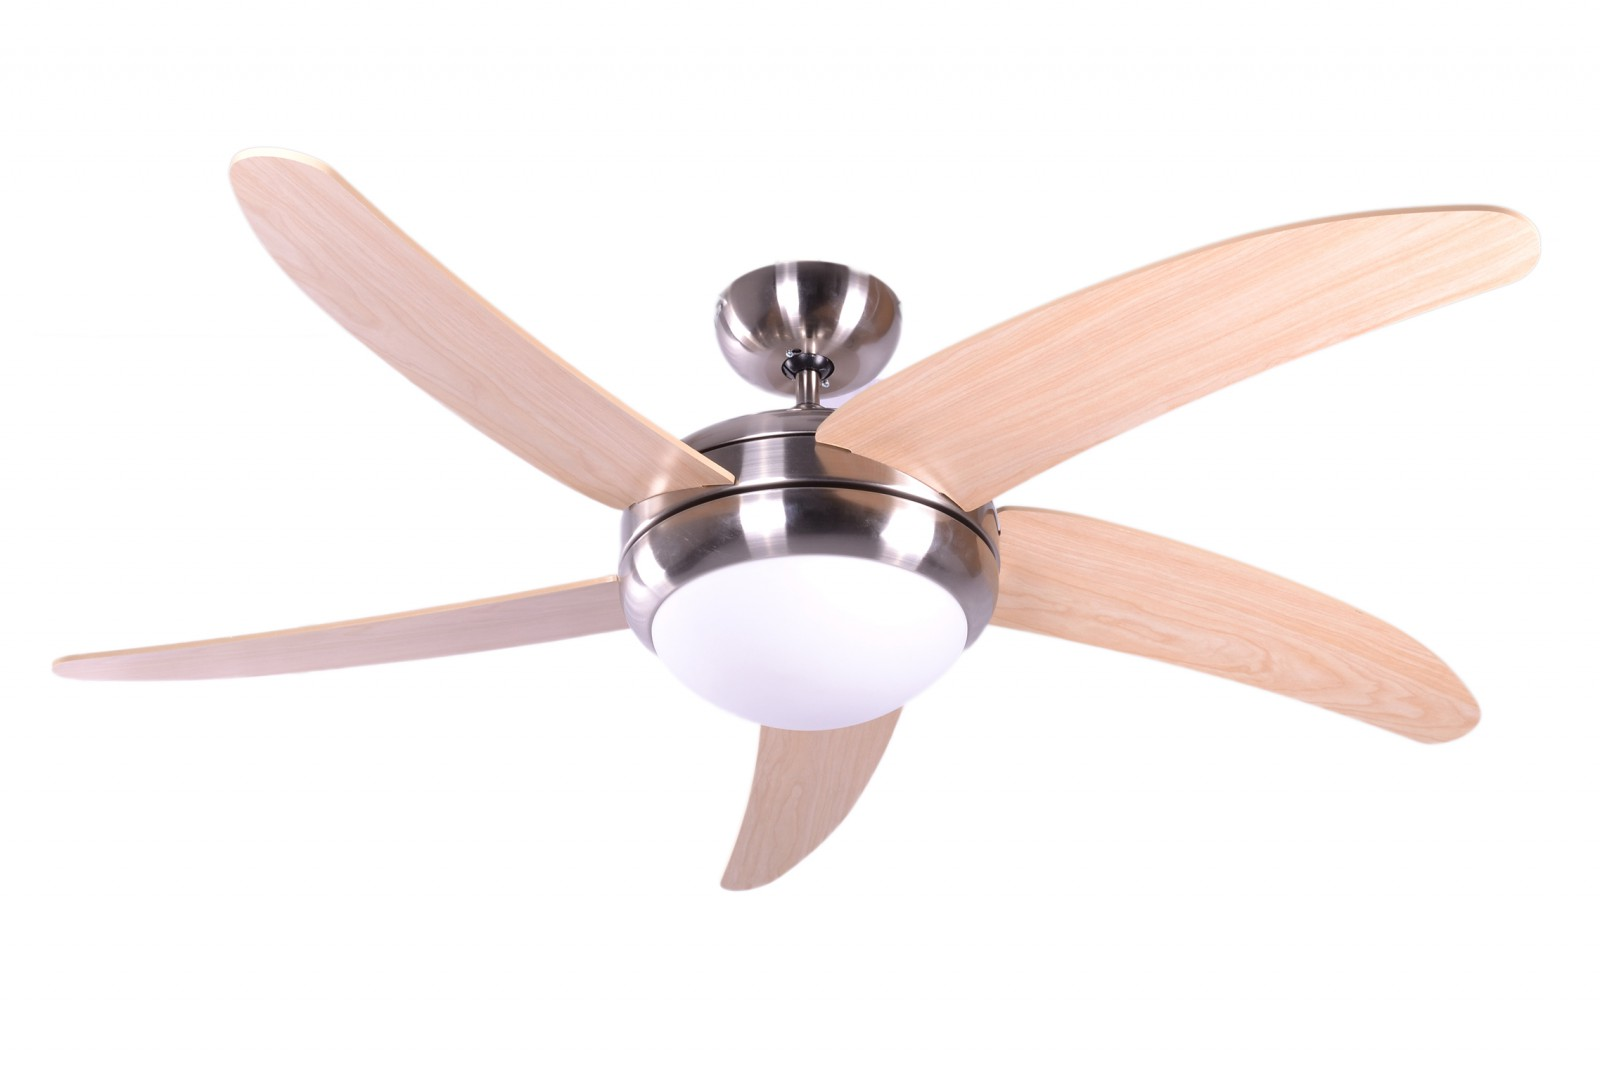 Remote Control Fan : Ceiling fan makkura chrome brushed maple blades with